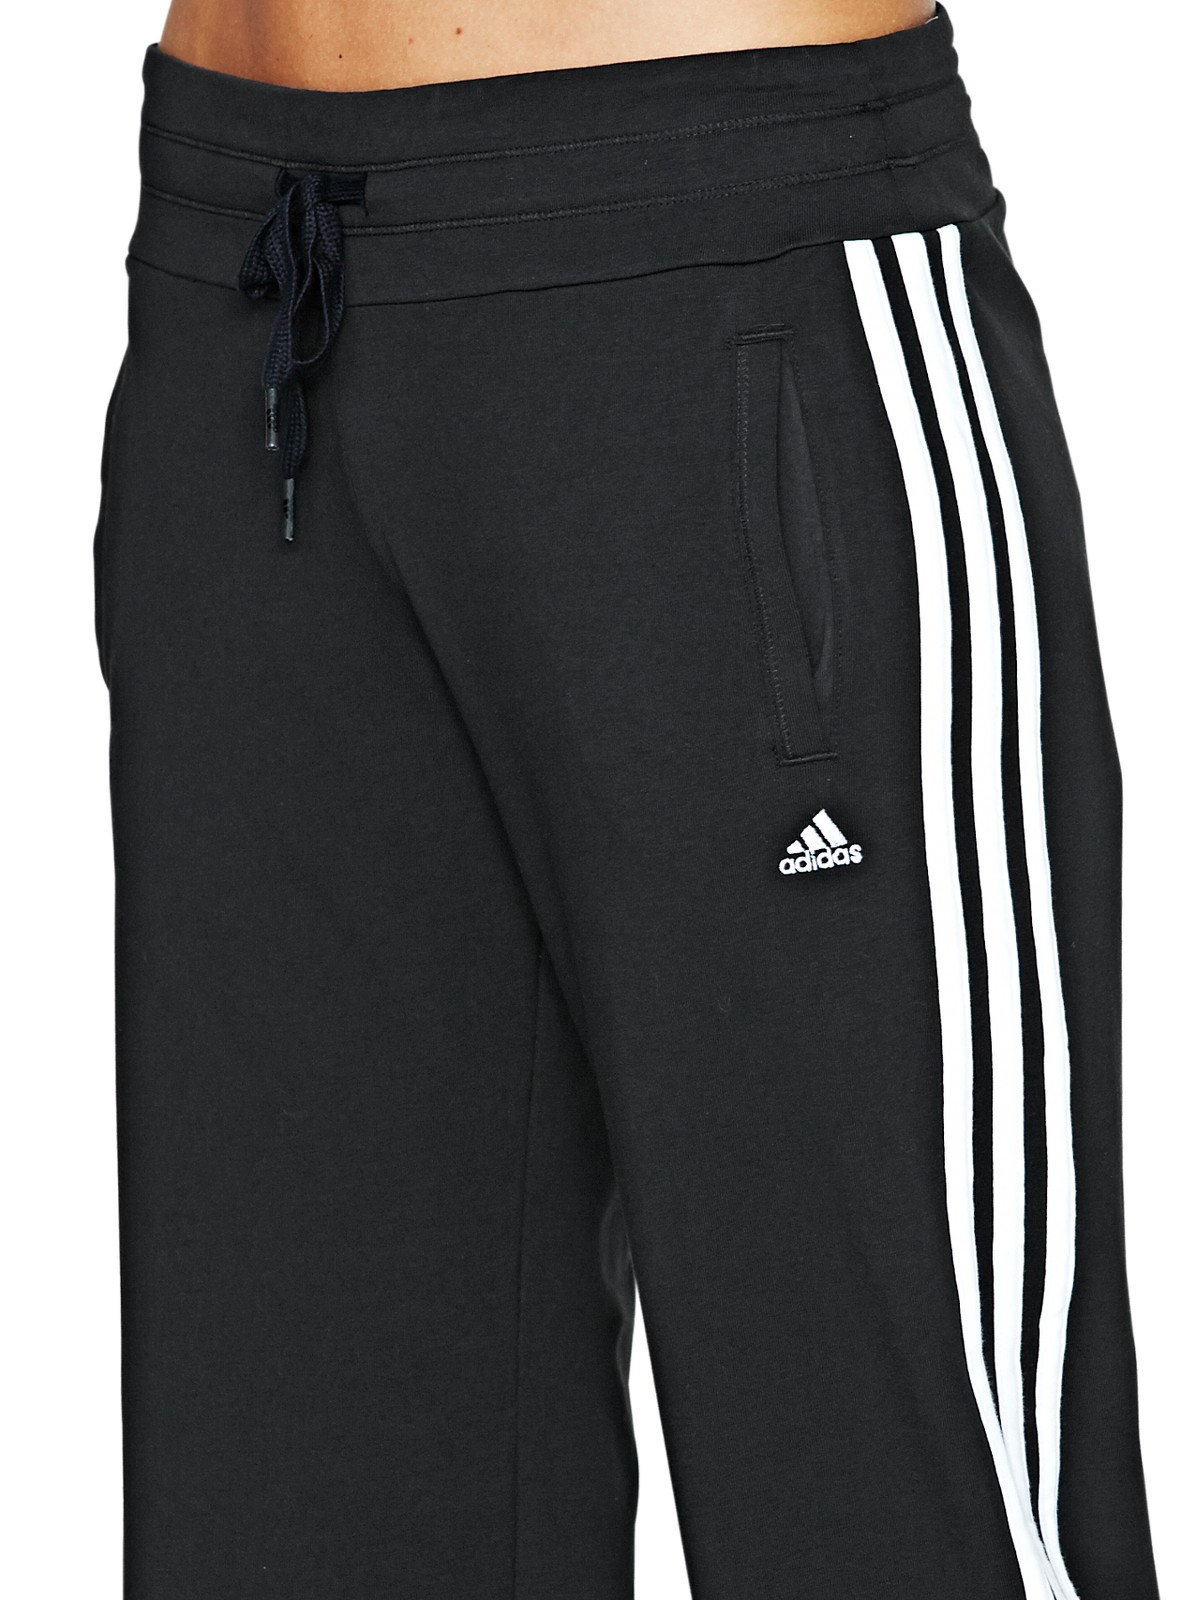 adidas adidas climalite 3s knit pants in black black. Black Bedroom Furniture Sets. Home Design Ideas